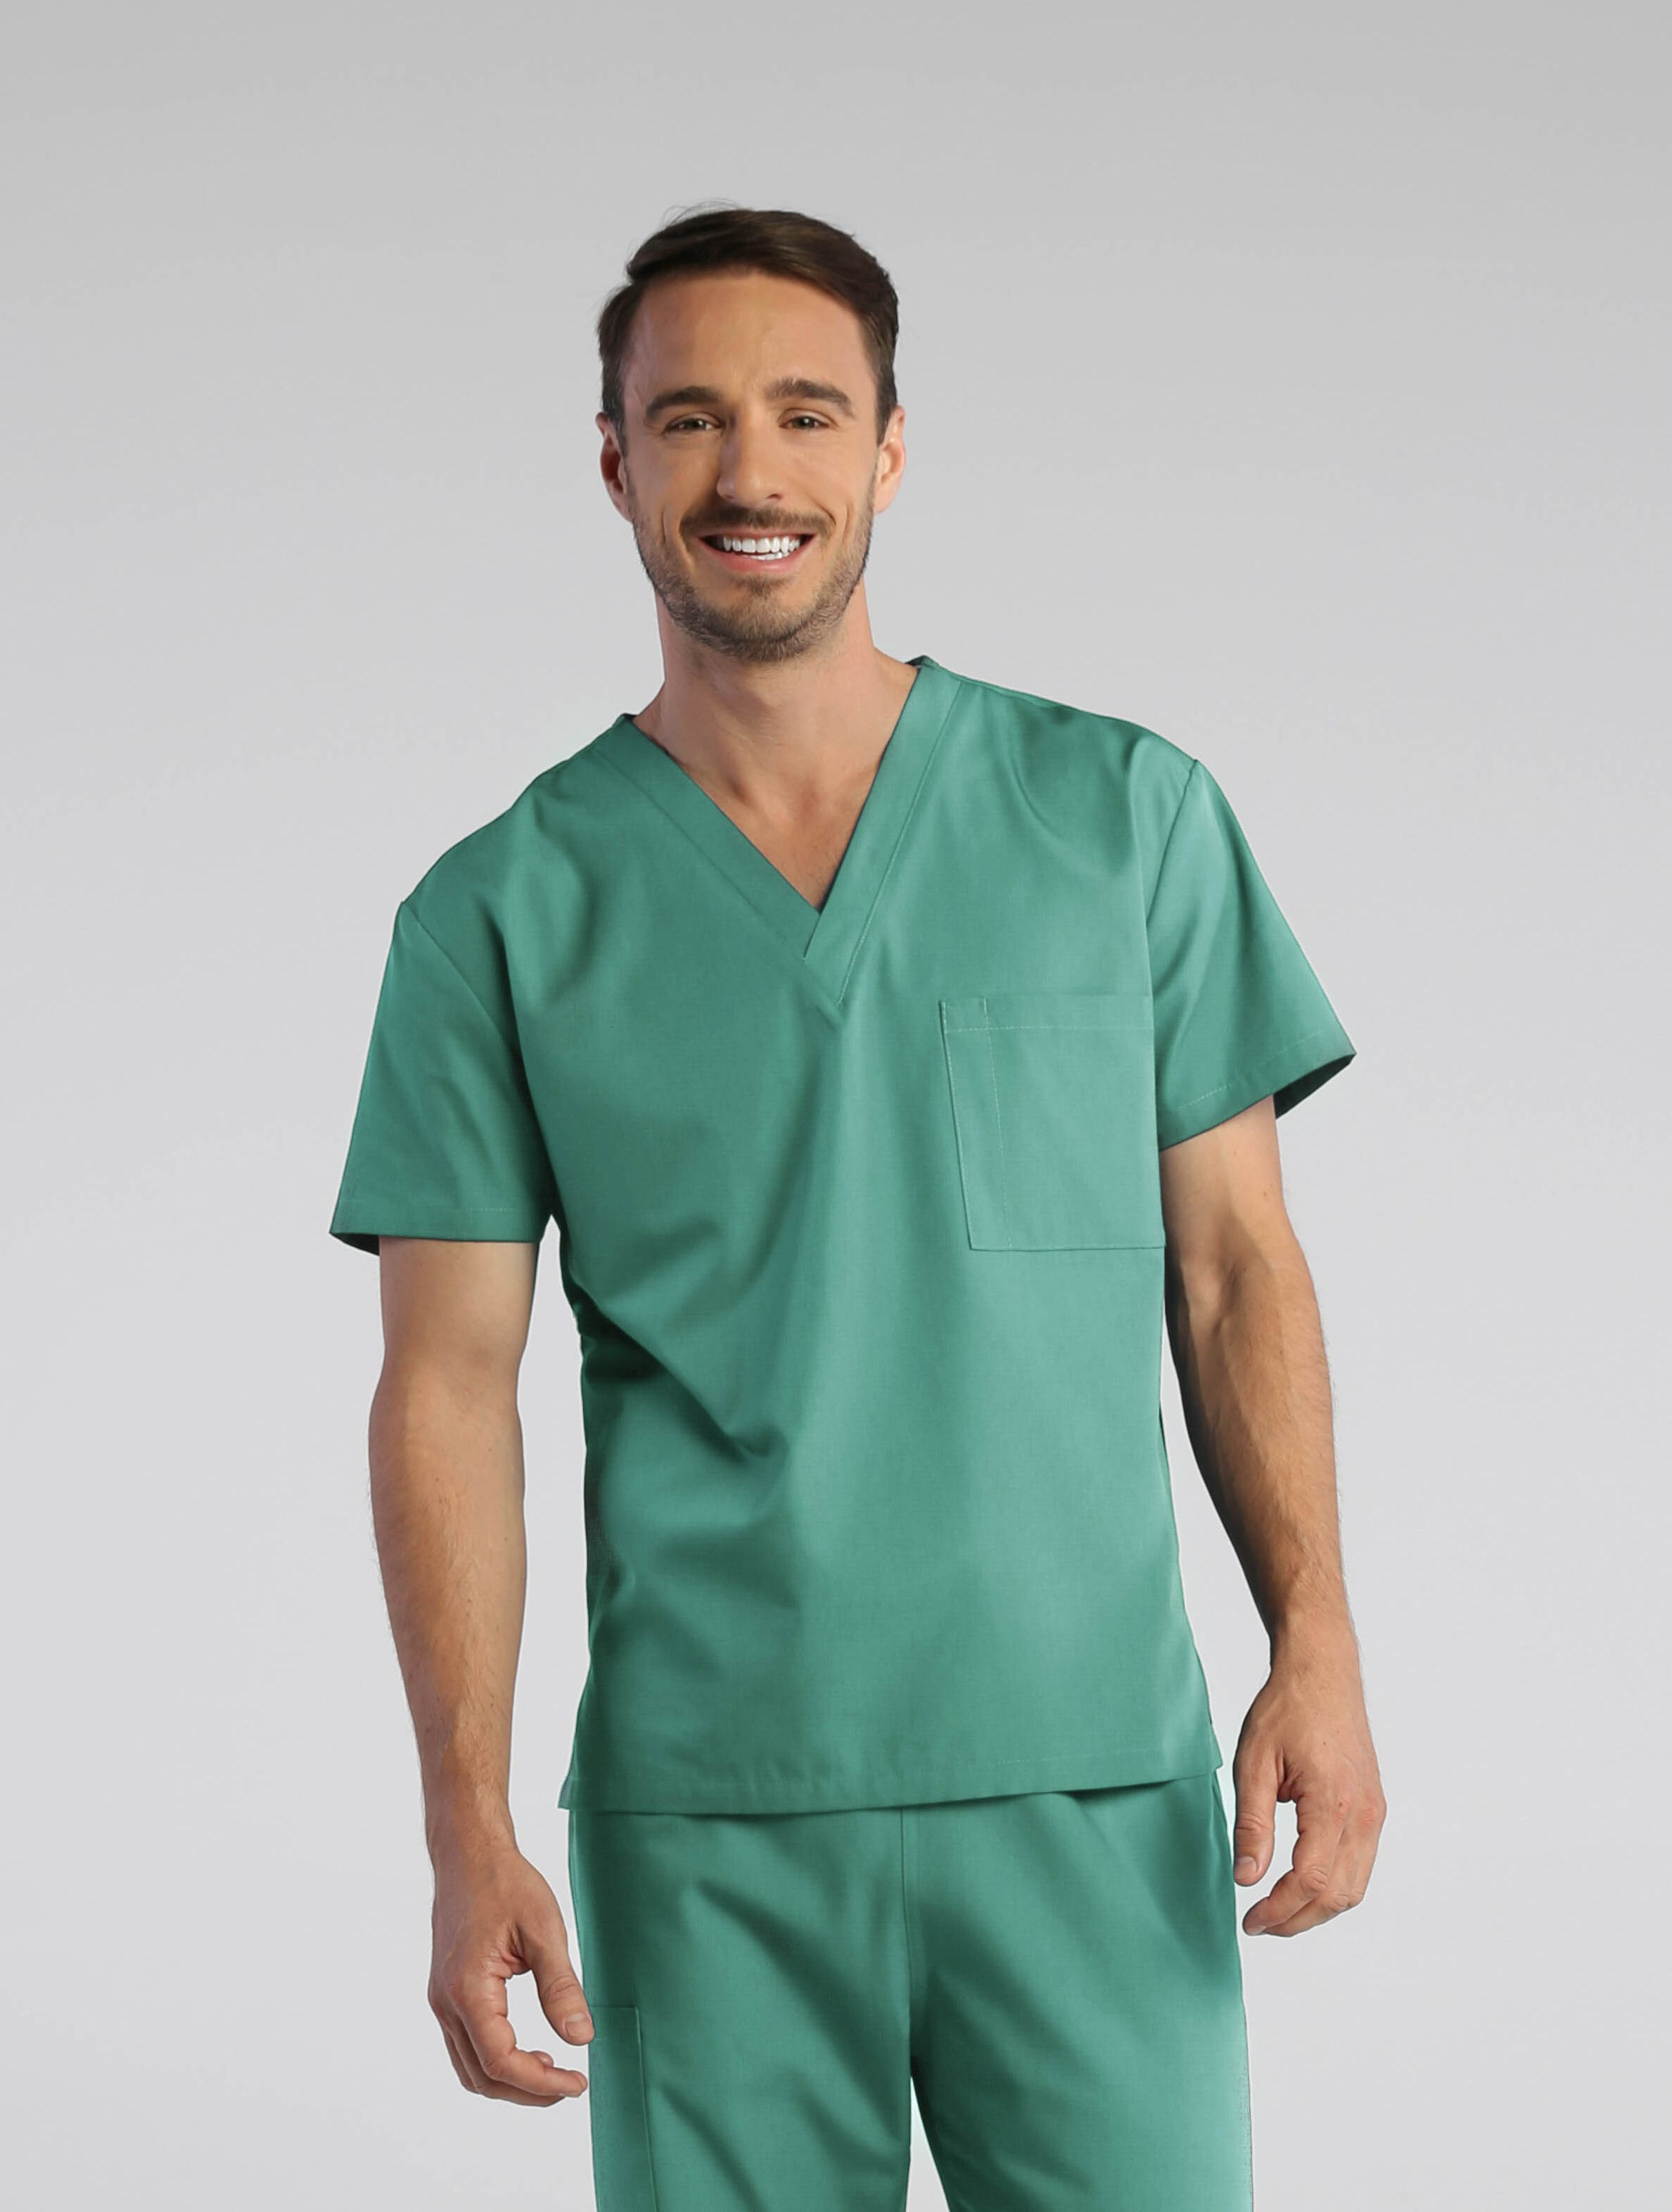 b806f0bfb0c Our Red Panda scrubs are finally available in Surgical Green! This unisex  scrub set just got even more group friendly with six new colors that are  perfect ...